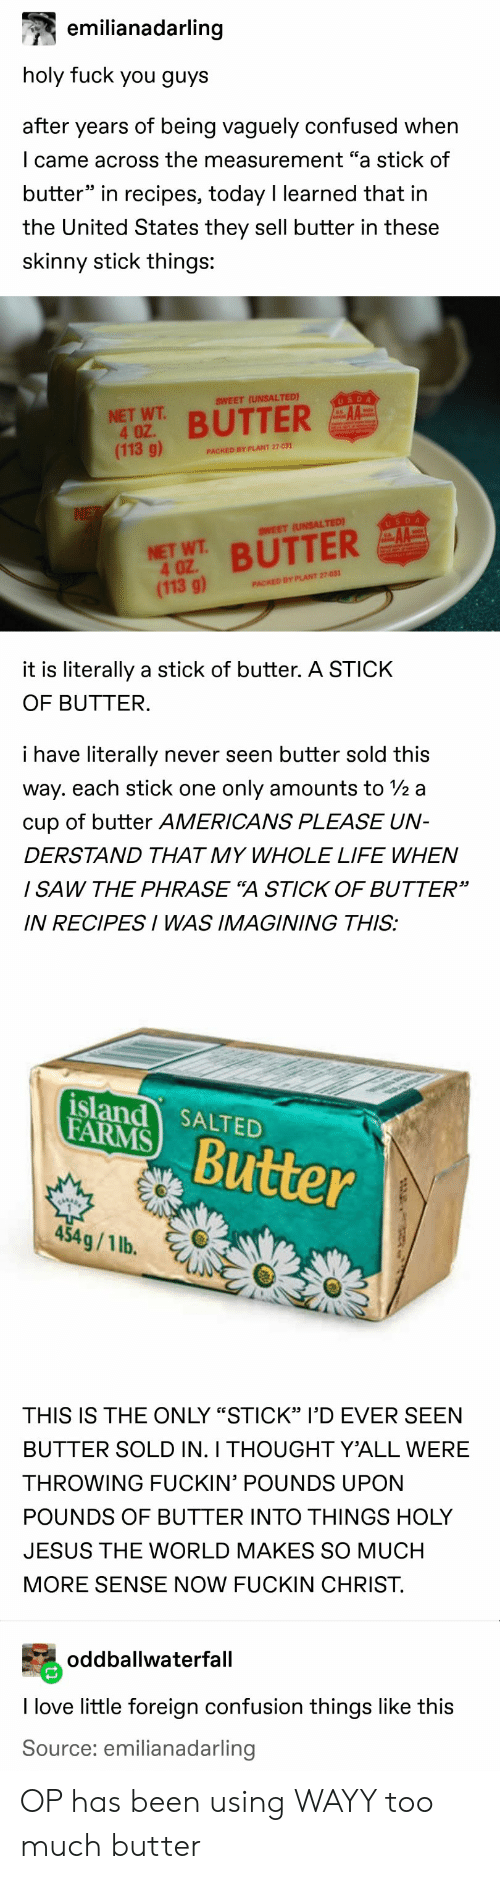 "imagining: emilianadarling  holy fuck you guys  after years of being vaguely confused when  I came across the measurement ""a stick of  butter"" in recipes, today I learned that in  the United States they sell butter in these  skinny stick things:  SWEET (UNSALTED)  USDA  NET WT  4 OZ.  (113 g)  BUTTER  PACKED BY PLANT 27-031  NE  USDA  SWEET (UNSALTED)  NET WT BUTTER  4 OZ  (113 g)  PACKED BY PLANT 27-031  it is literally a stick of butter. A STICK  OF BUTTER.  i have literally  never seen butter sold this  way. each stick one  only amounts to /2 a  cup of butter AMERICANS PLEASE UN-  DERSTAND THAT MY WHOLE LIFE WHEN  / SAW THE PHRASE ""A STICK OF BUTTER""  IN RECIPESI WAS IMAGINING THIS:  island SALTED  FARMS  Butter  454g/1 lb.  THIS IS THE ONLY ""STICK"" l'D EVER SEEN  BUTTER SOLD IN. I THOUGHT Y'ALL WERE  THROWING FUCKIN' POUNDS UPON  POUNDS OF BUTTER INTO THINGS HOLY  JESUS THE WORLD MAKES SO MUCH  MORE SENSE NOW FUCKIN CHRIST.  oddballwaterfall  I love little foreign confusion things like this  Source: emilianadarling OP has been using WAYY too much butter"